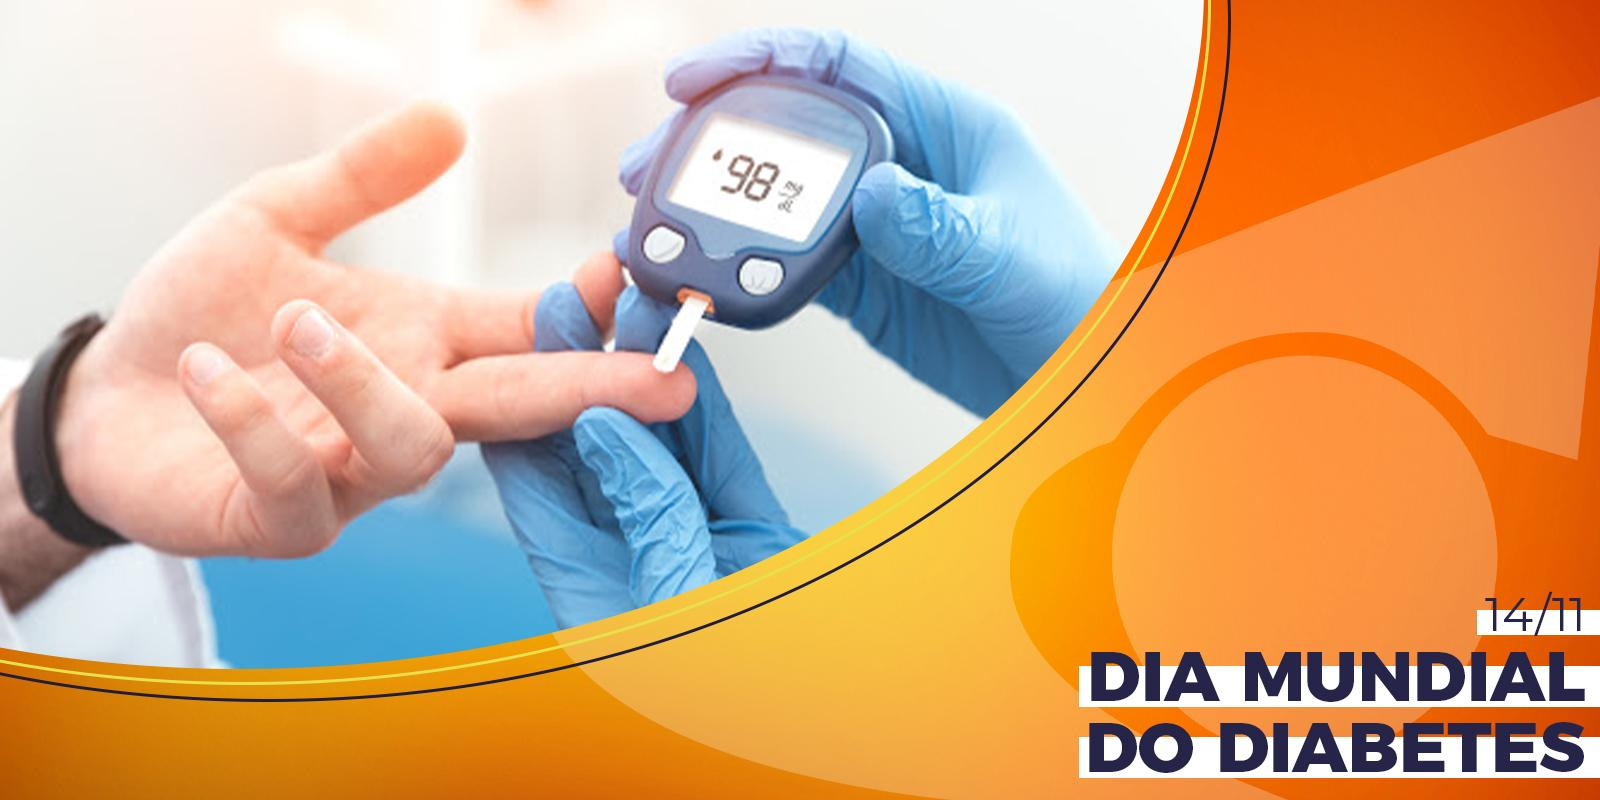 Dia Mundial do Diabetes - 14 de Novembro